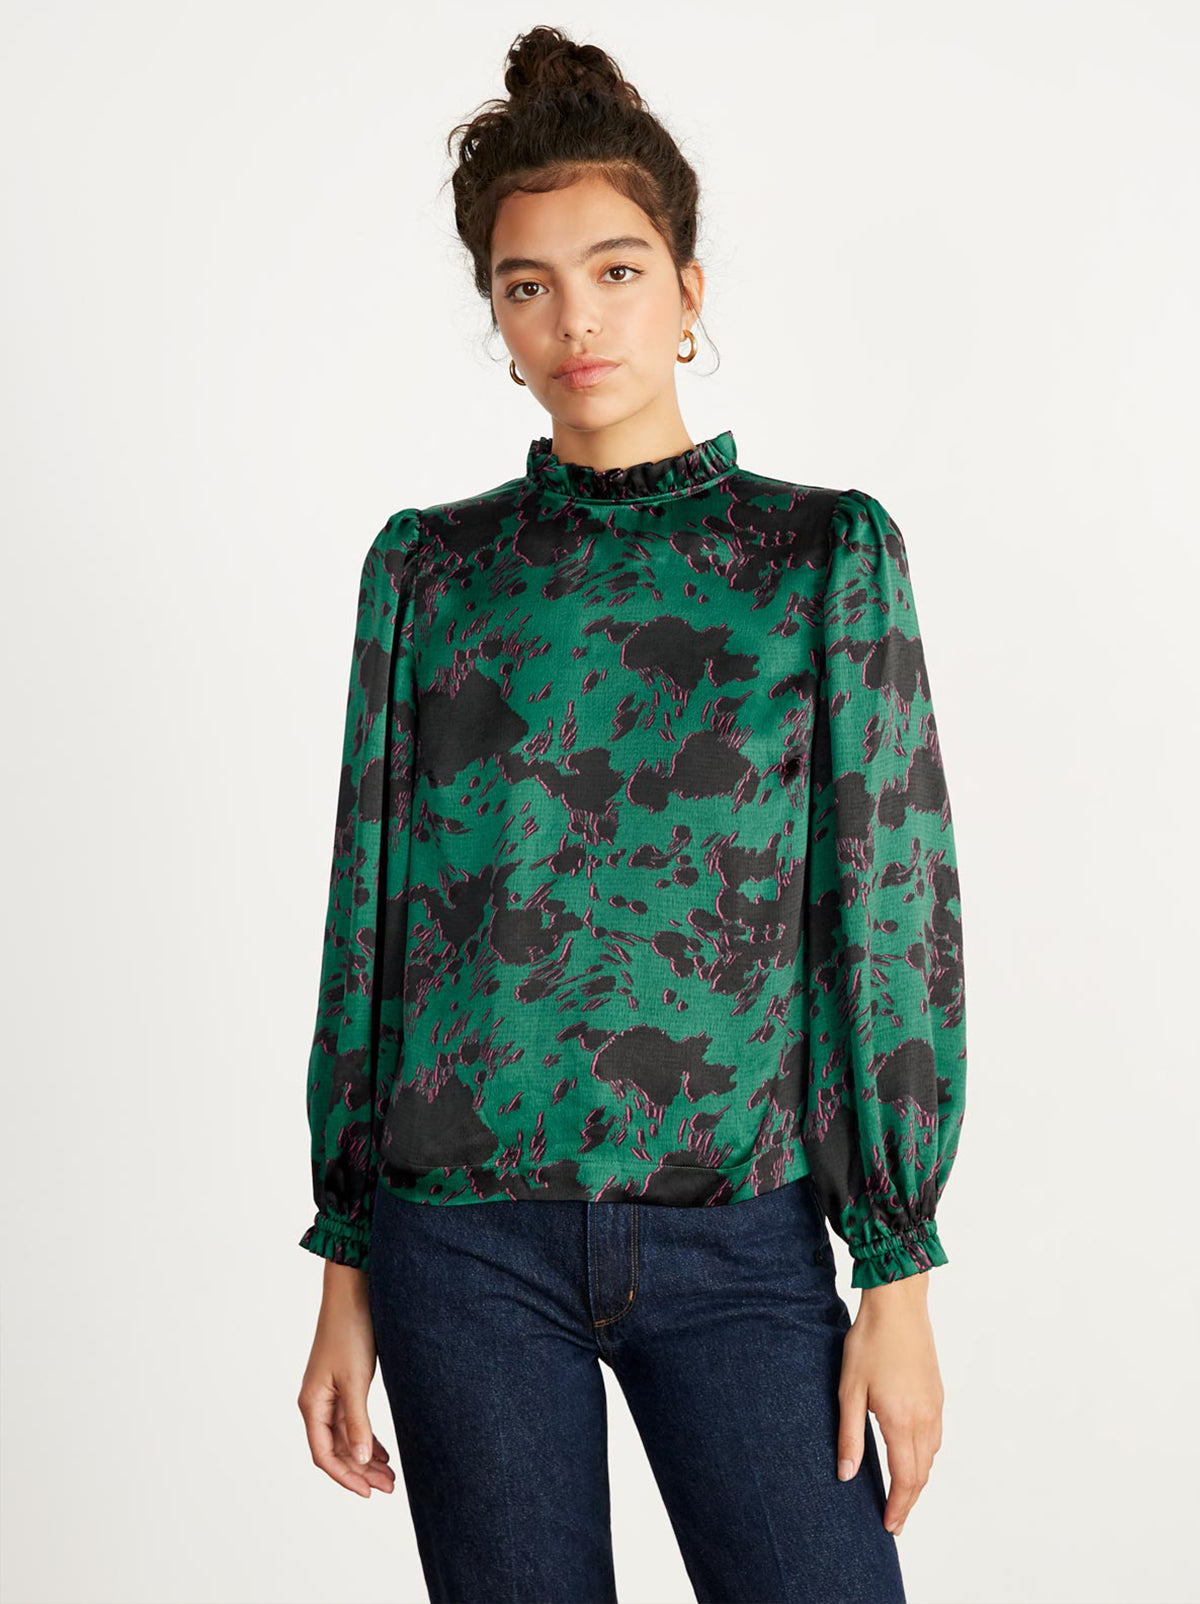 Teresa Green Cow Print Top by KITRI Studio